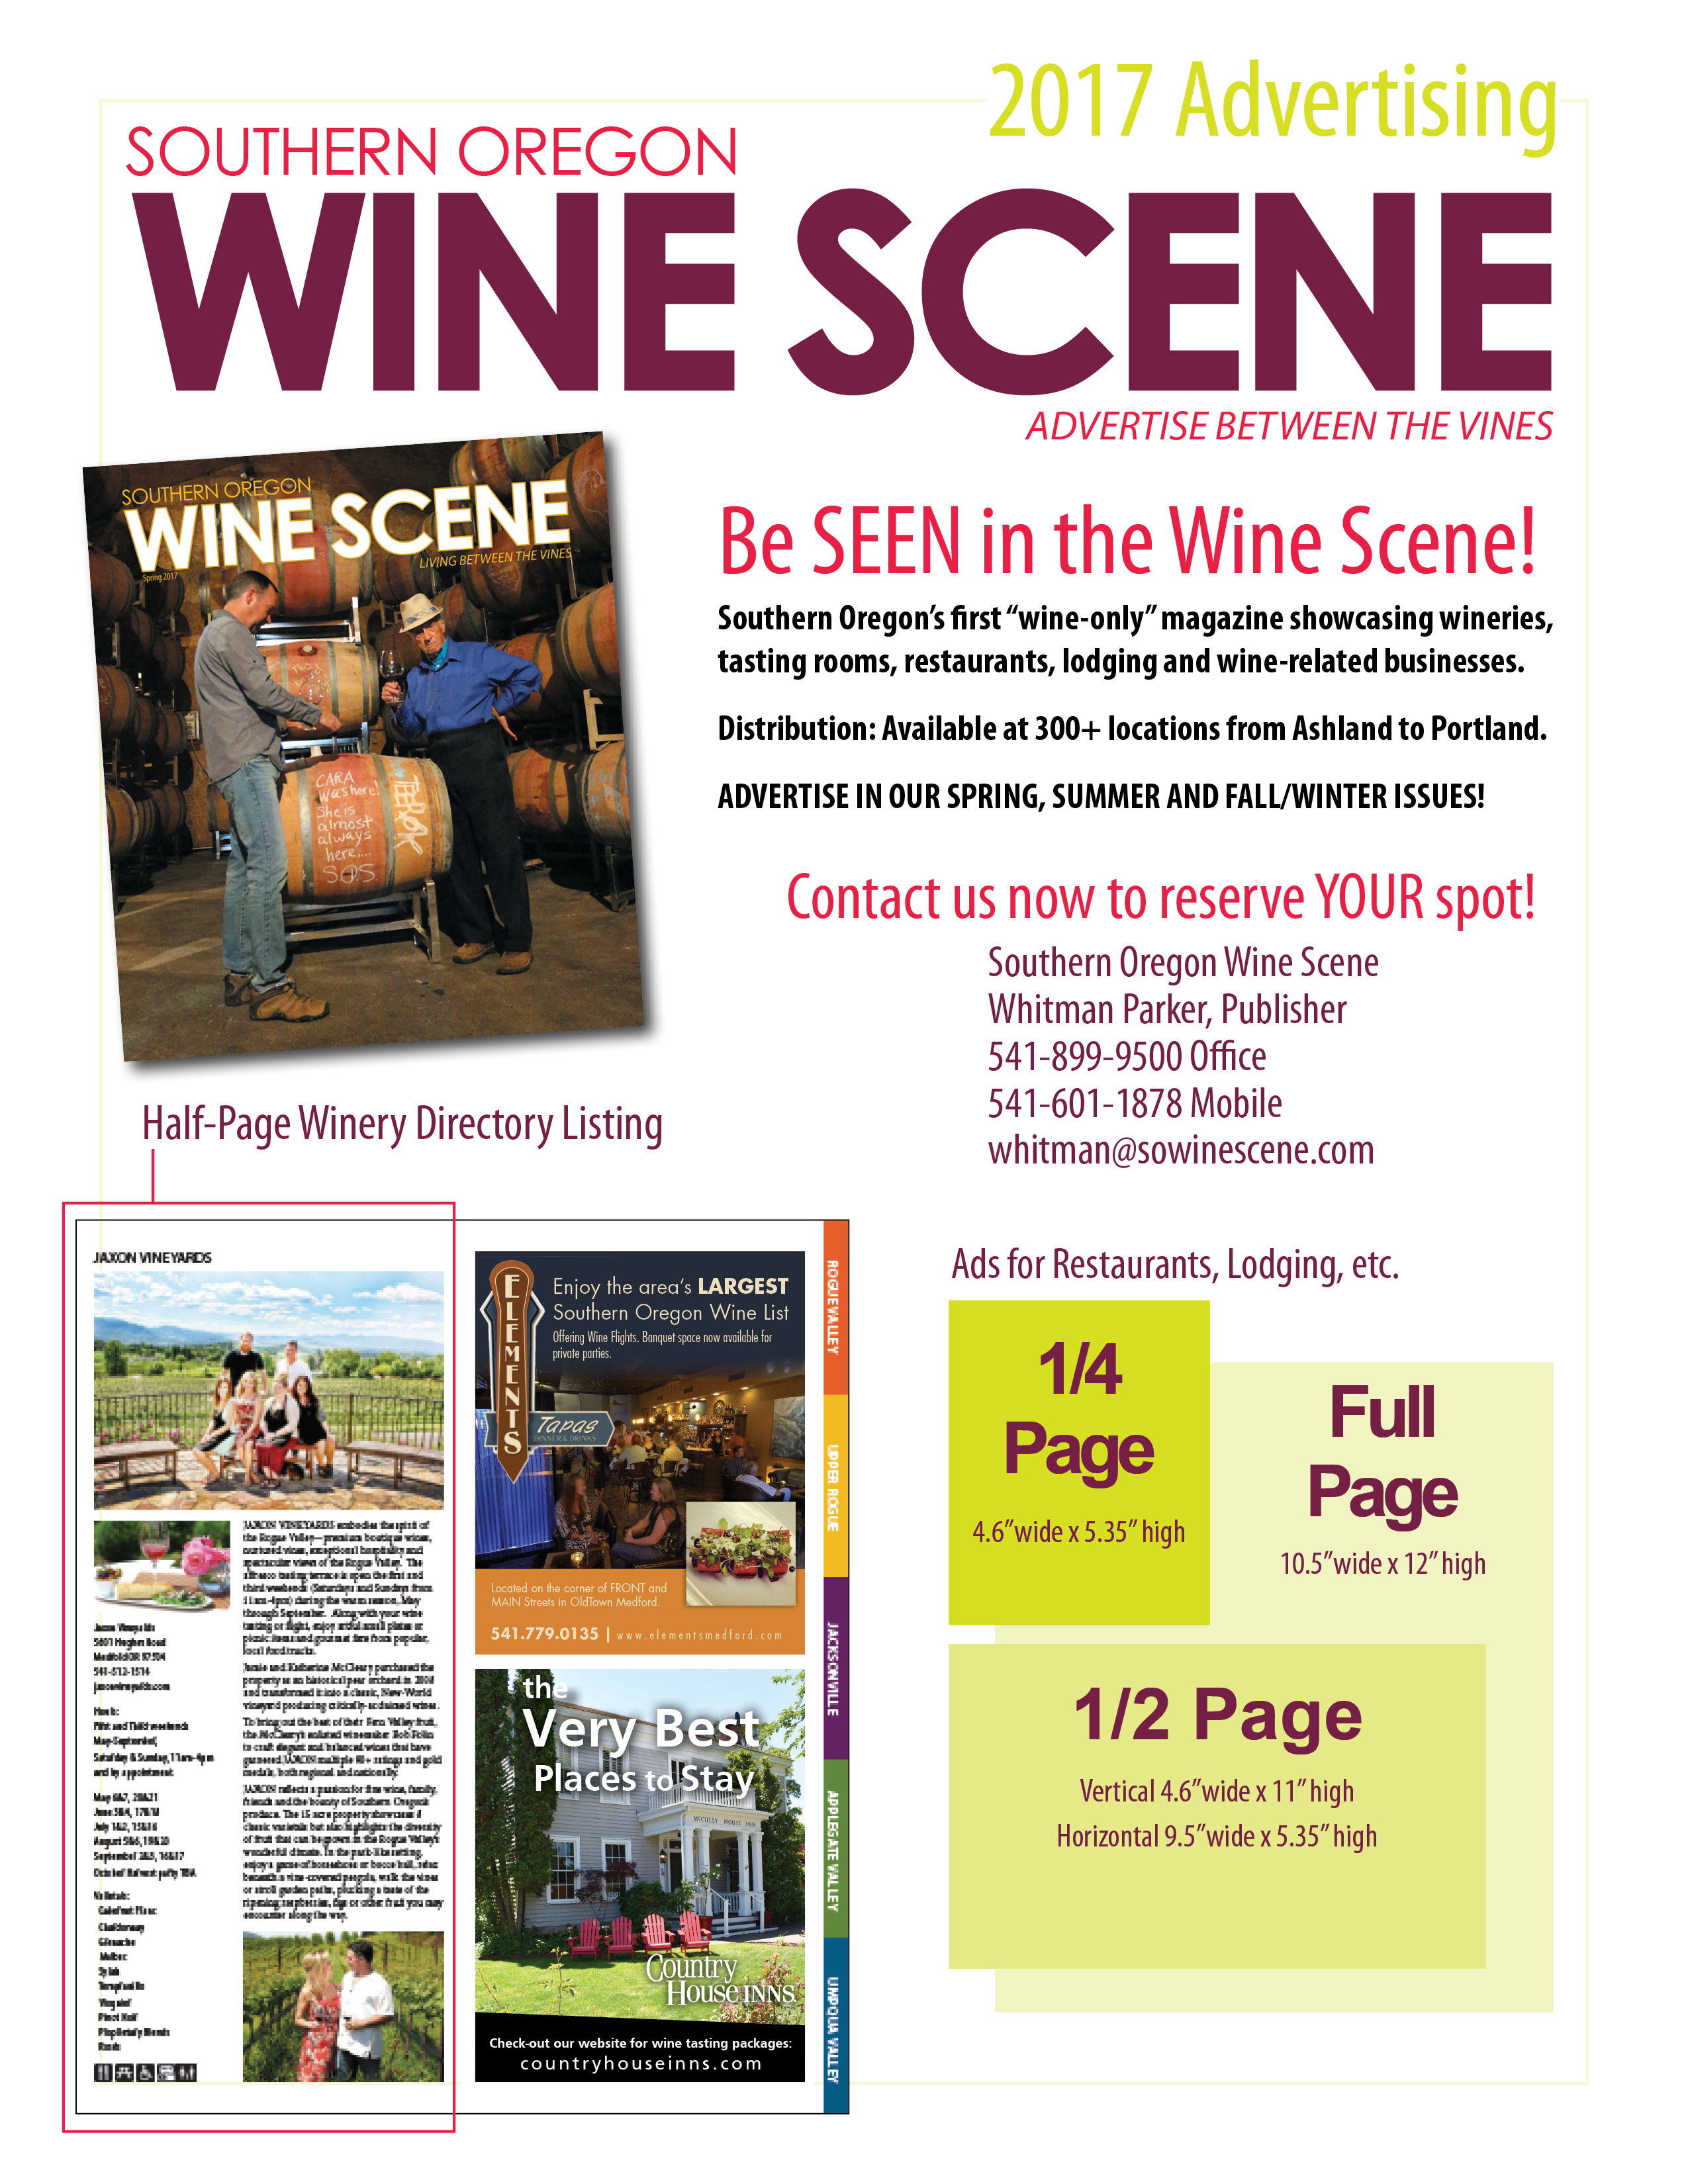 Wine Scene Advertising - Summer 2017 for website